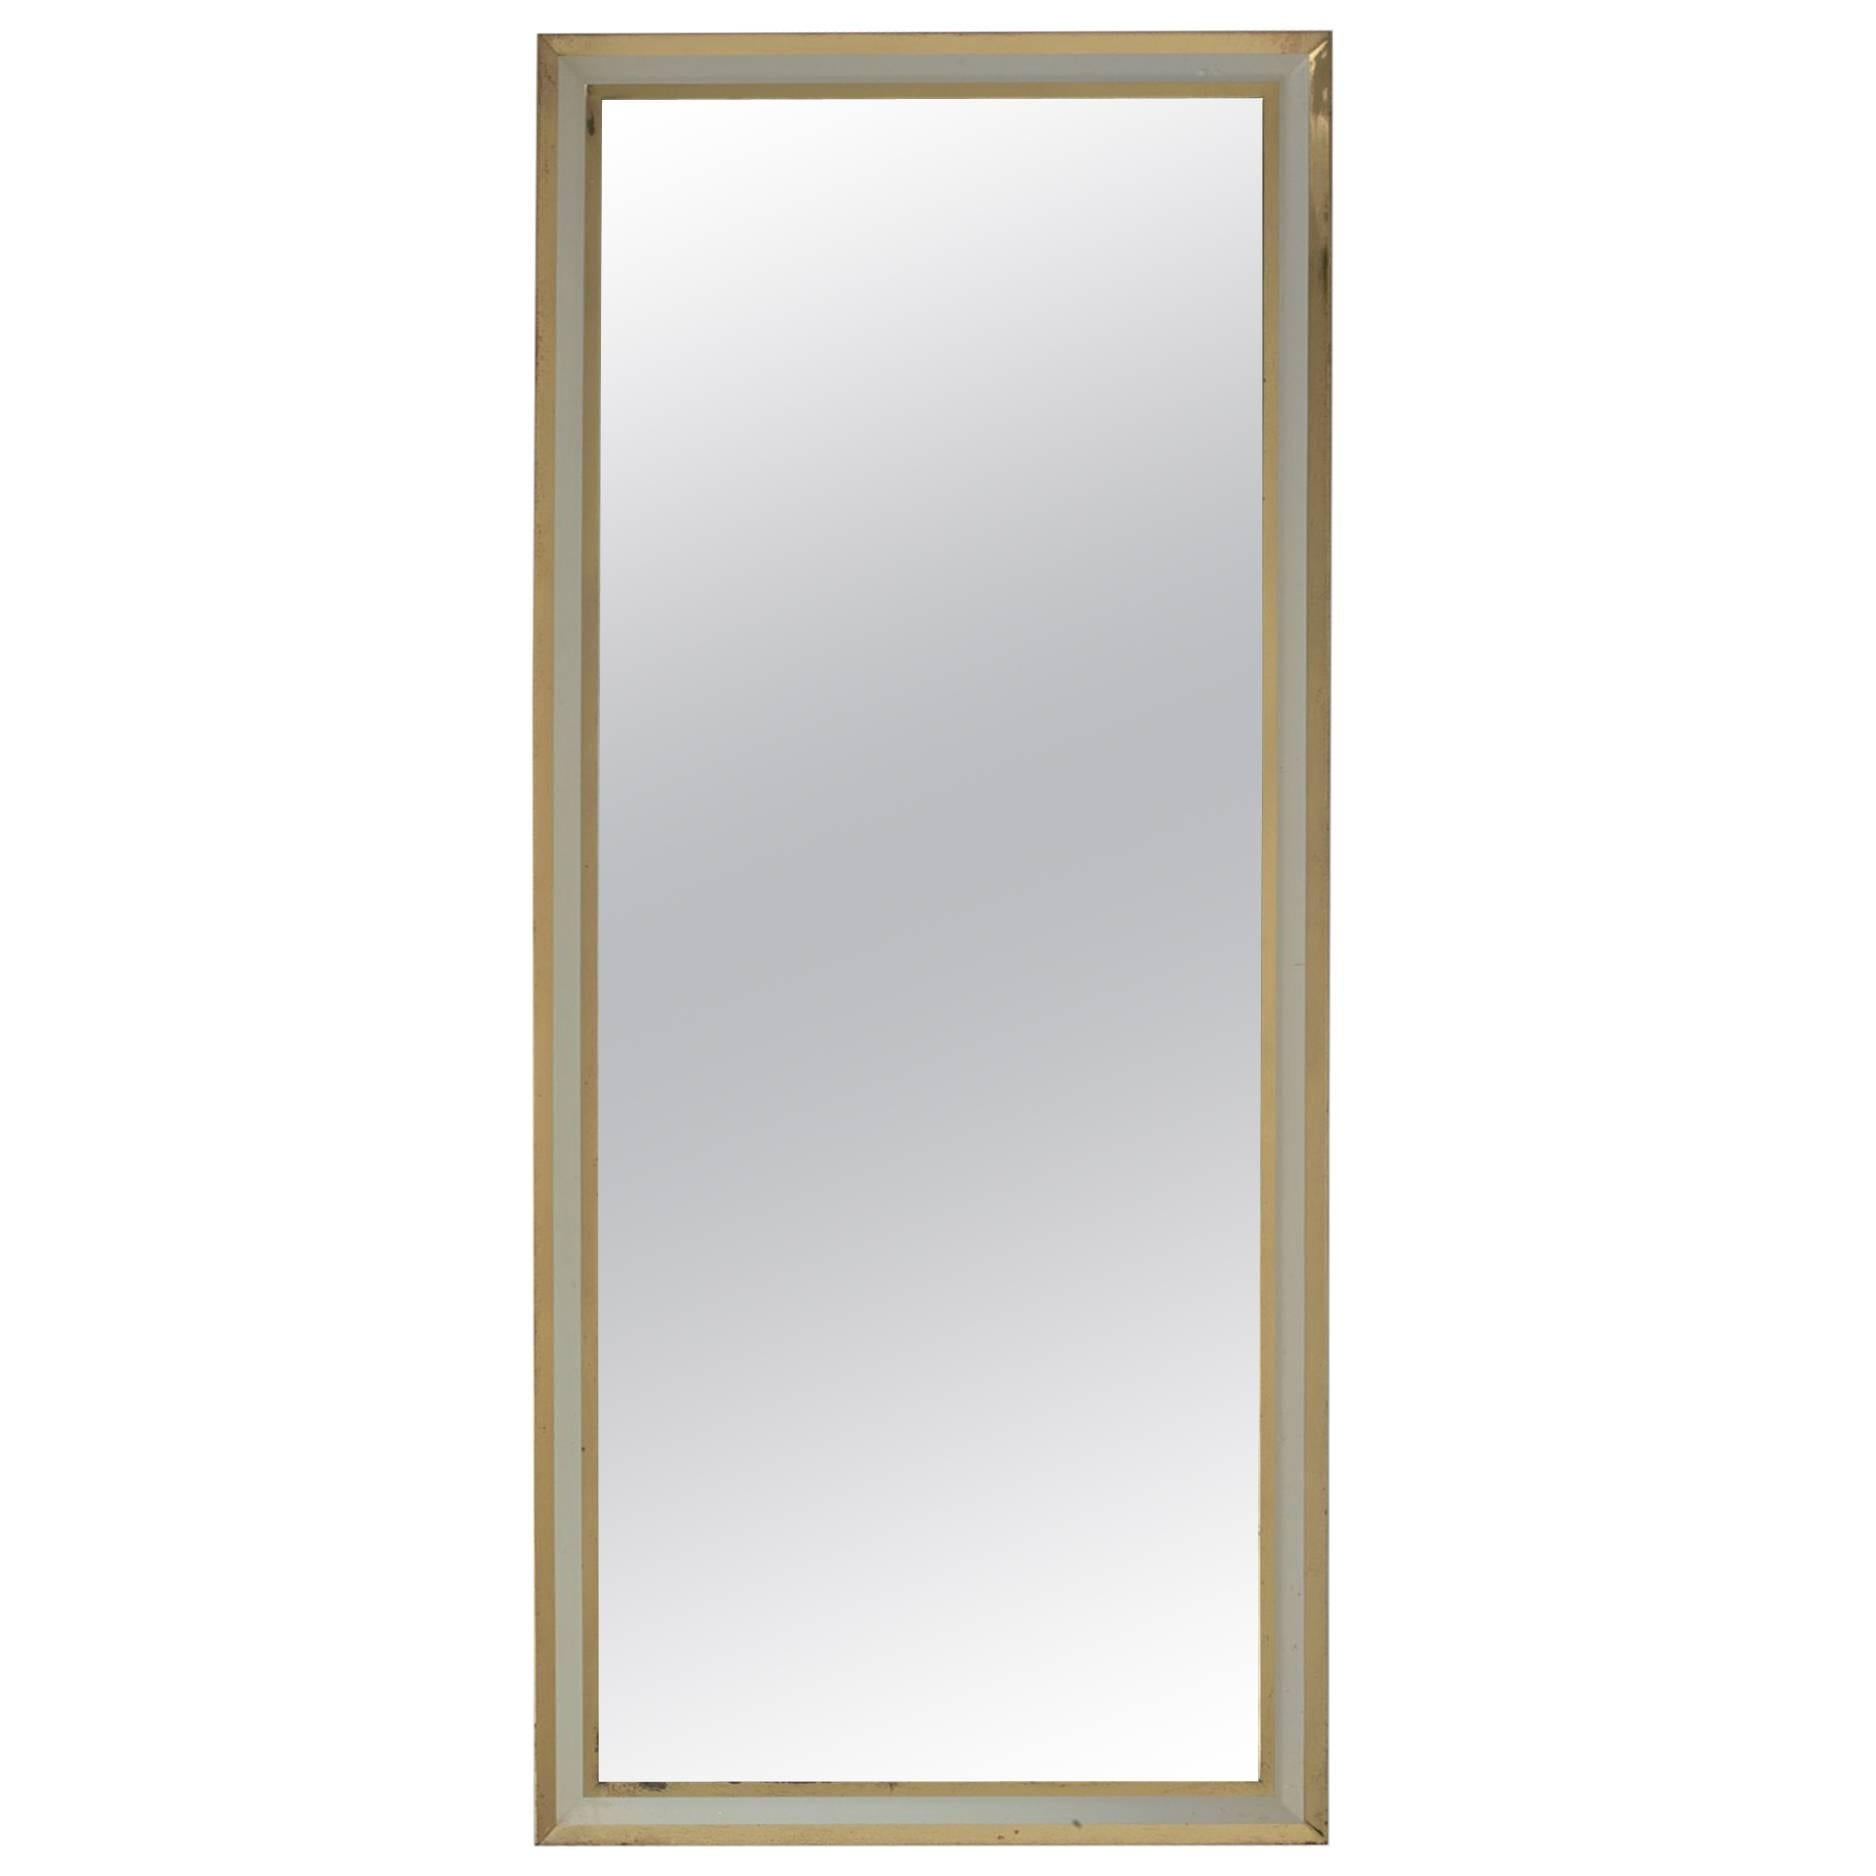 Large Rectangular Brass Mirror, Germany, 1950s